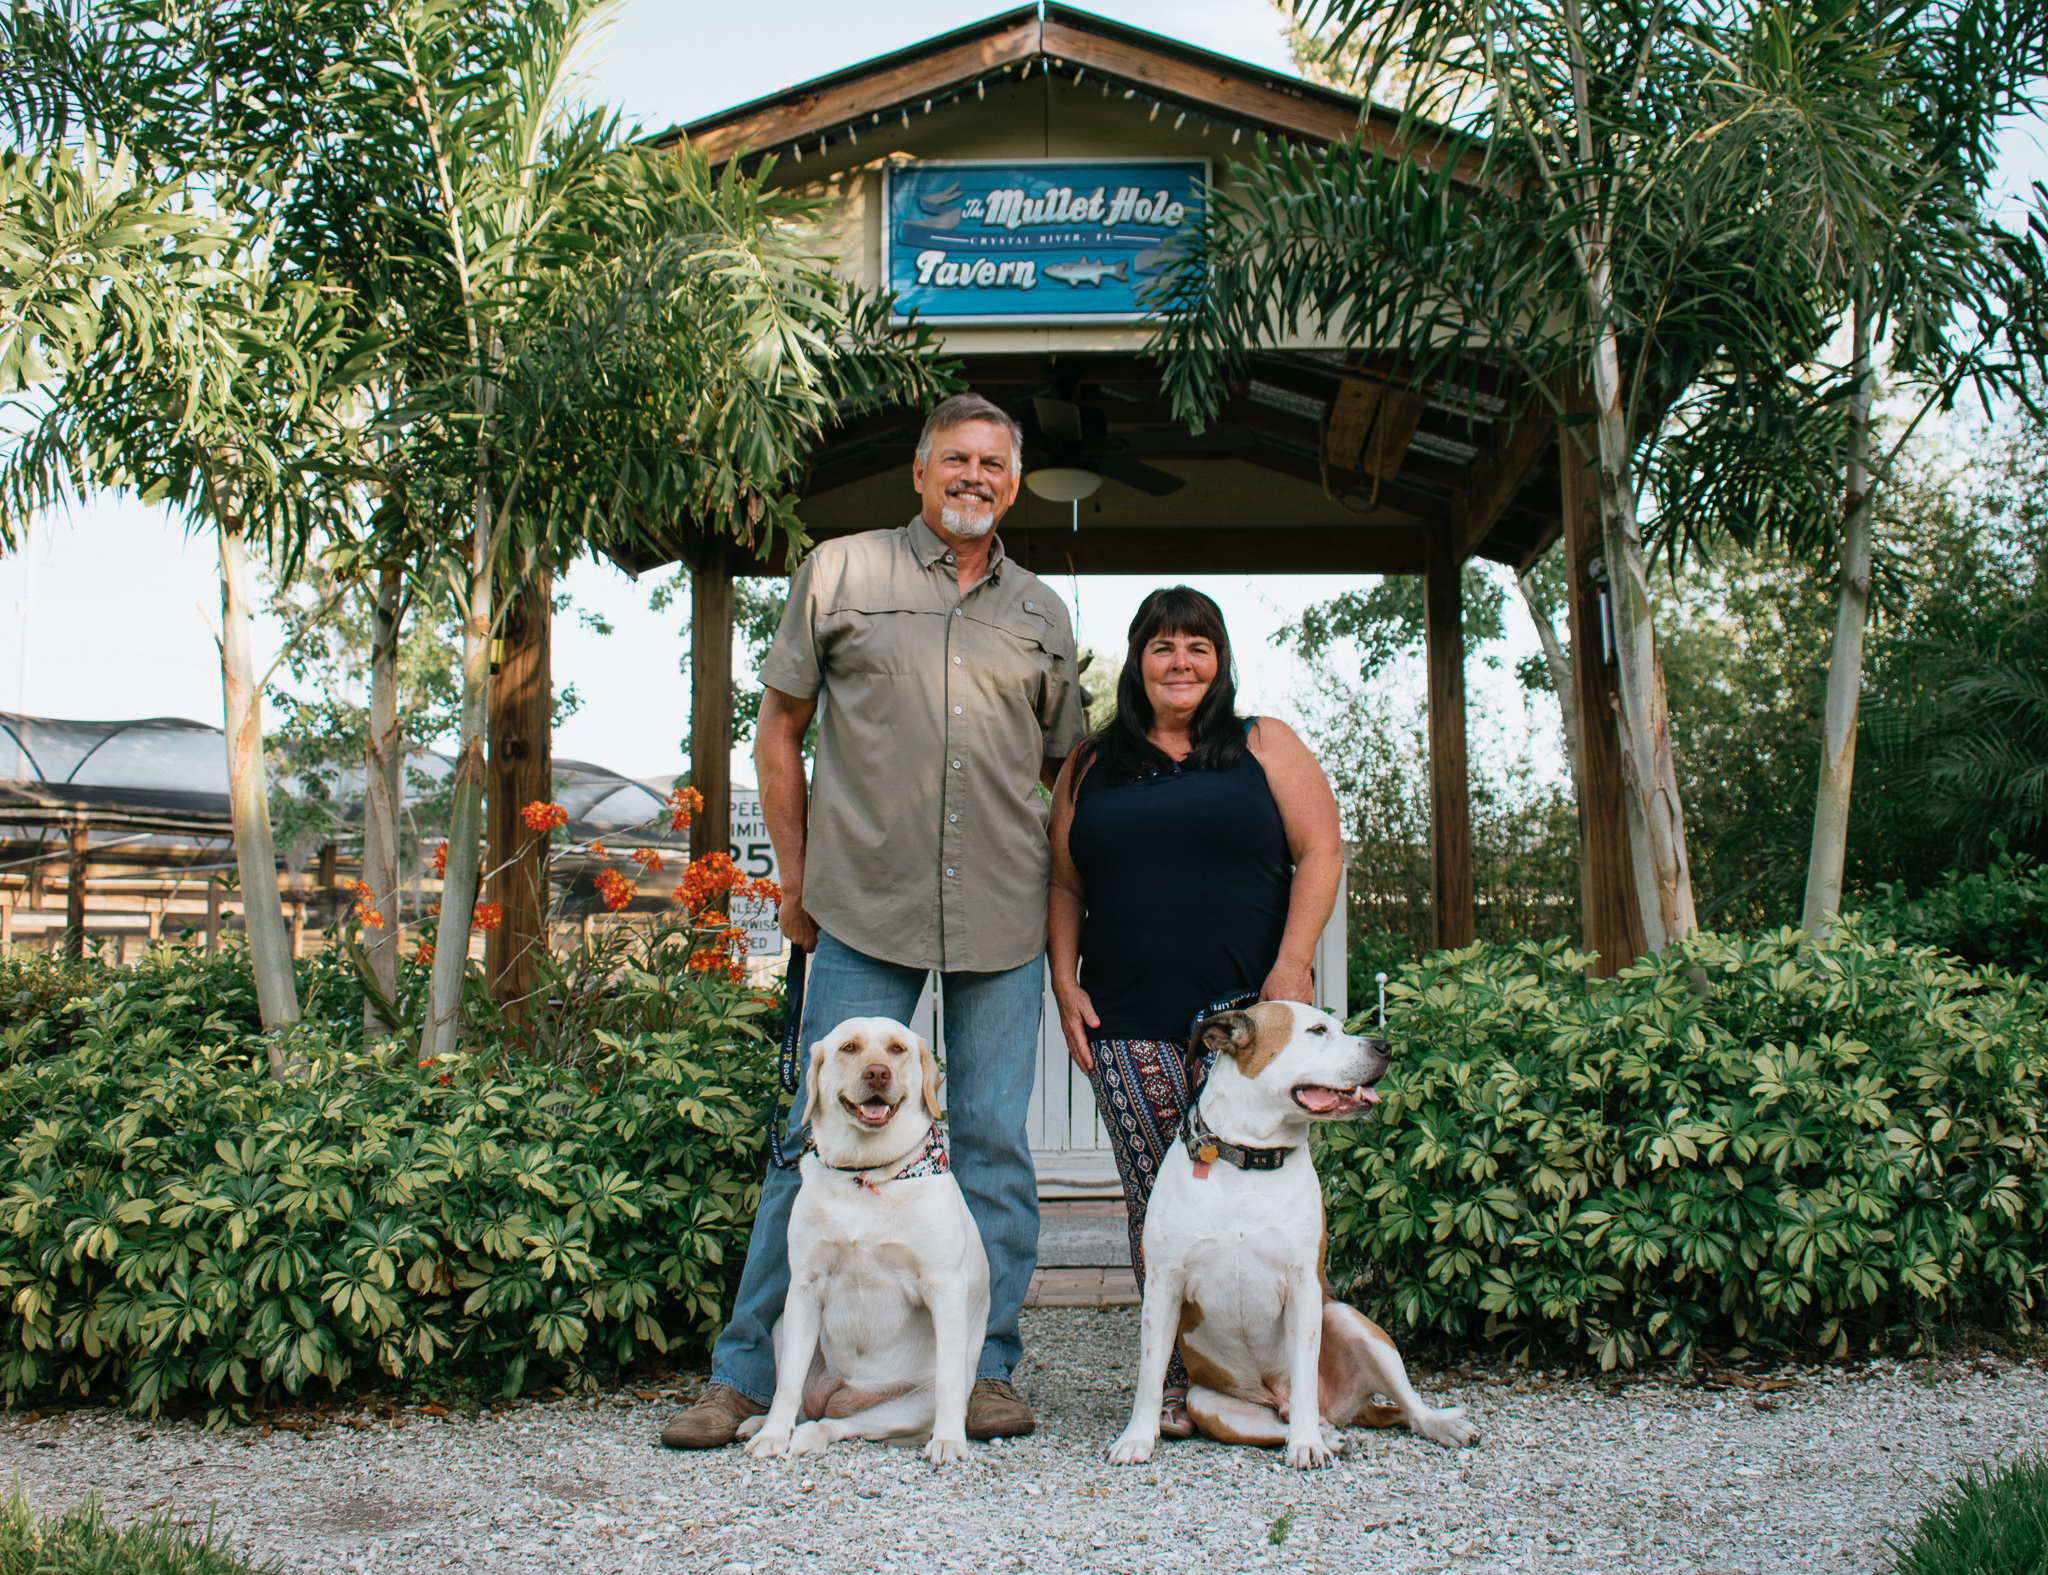 exceptional quality + customer service - Located in Gibsonton, Florida, Alafia Tropical Foliage is dedicated to providing total customer satisfaction and support by supplying our customers with top-quality, locally-grown plants. We are a family-owned business with over 38 years of experience.